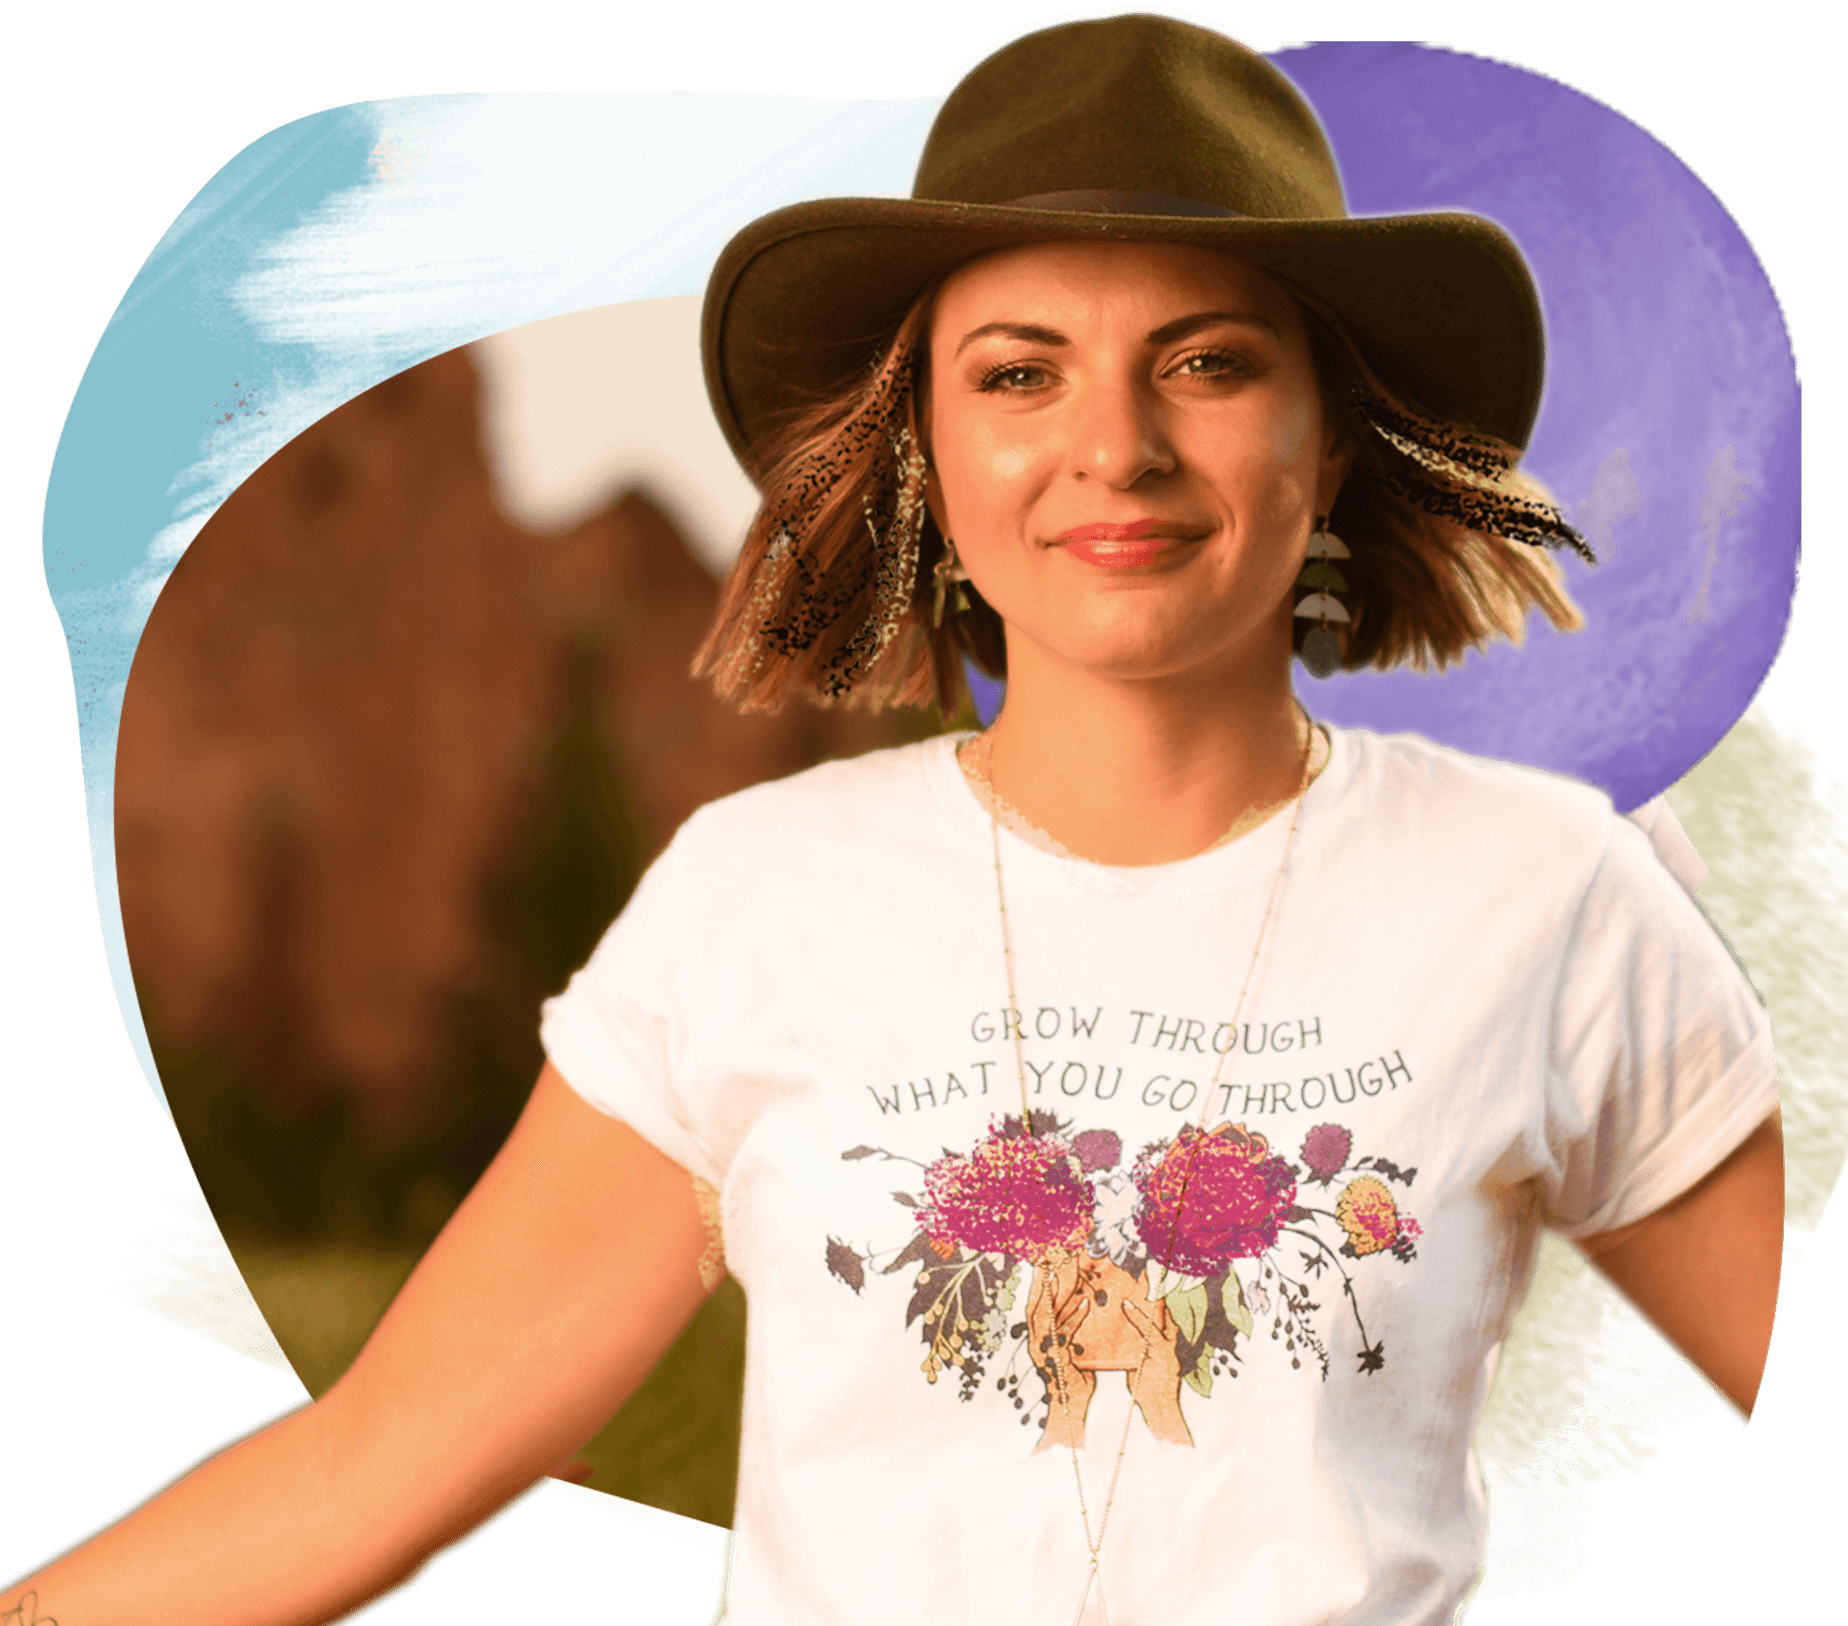 "A young woman with chin-length brown hair wears a brown fedora and a white T-shirt that says ""Grow through what you go through"" above a floral design. The background is an artistic design with colorful shapes."